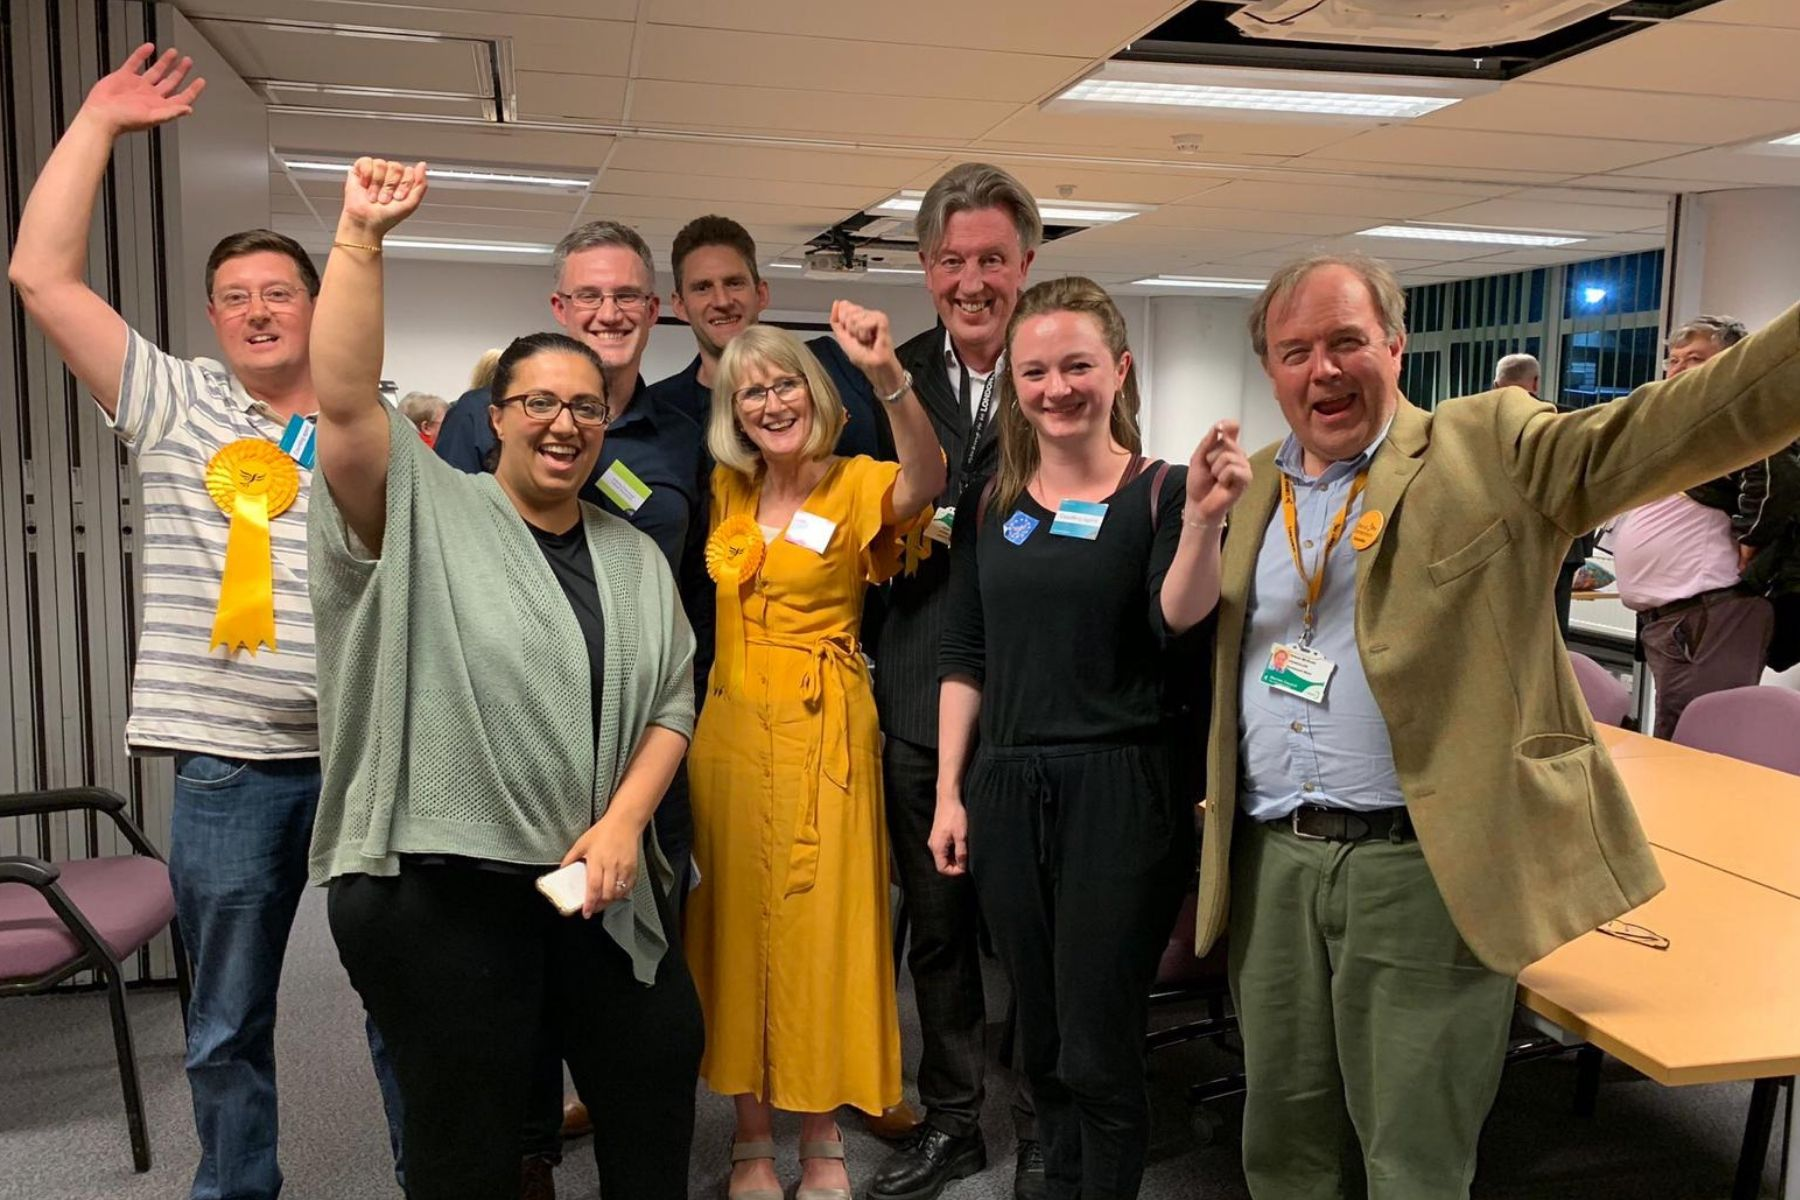 Lib Dems win Merton by-election in breakthrough against Labour